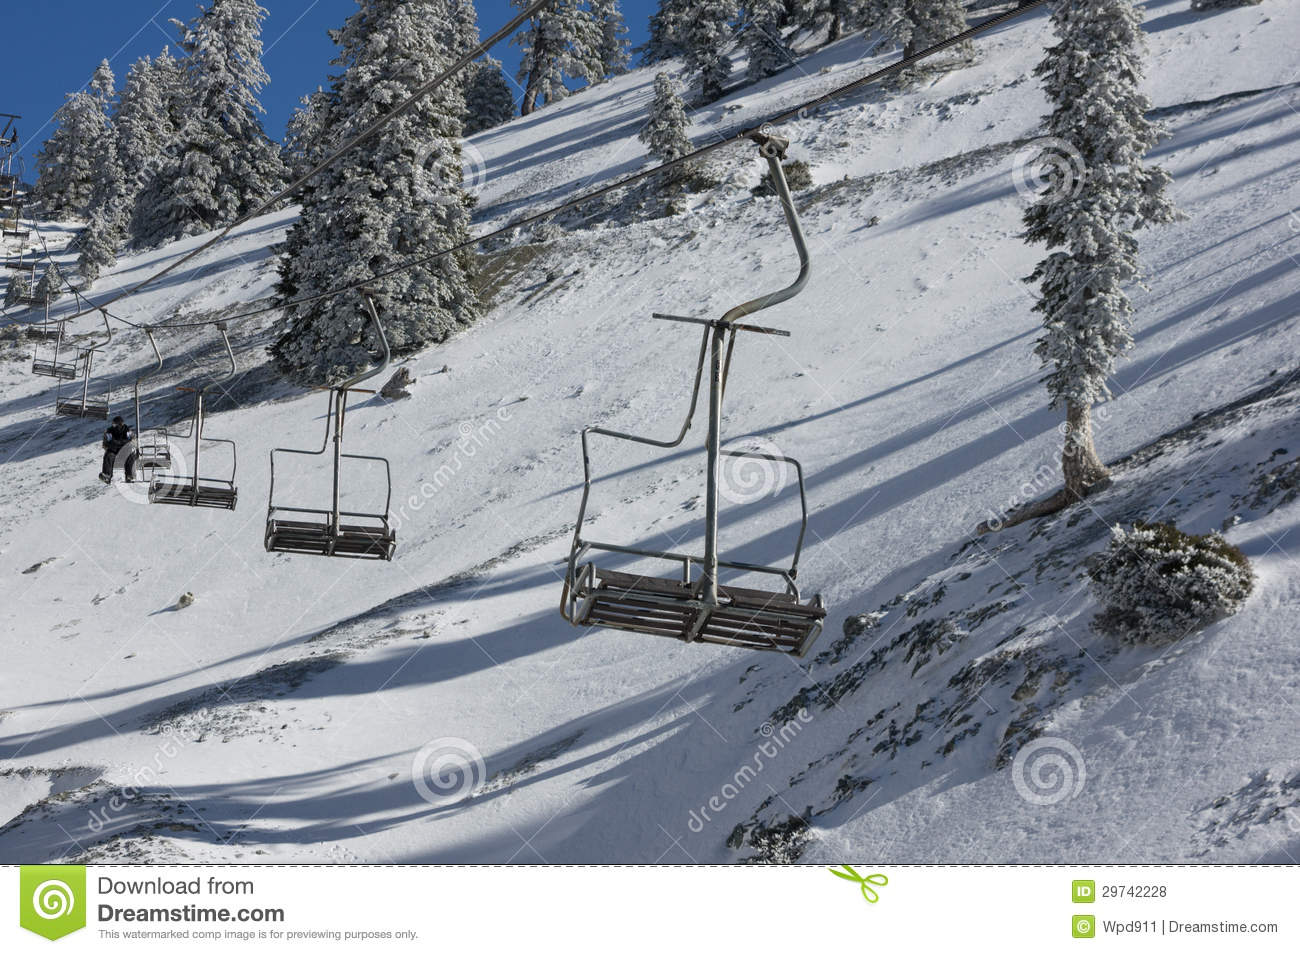 black singles in mt baldy All tickets are redeemed at the ticket window upon arrival at mt baldy ski lifts   black outs may apply december 24, 2017 -thru- january 3, 2018.